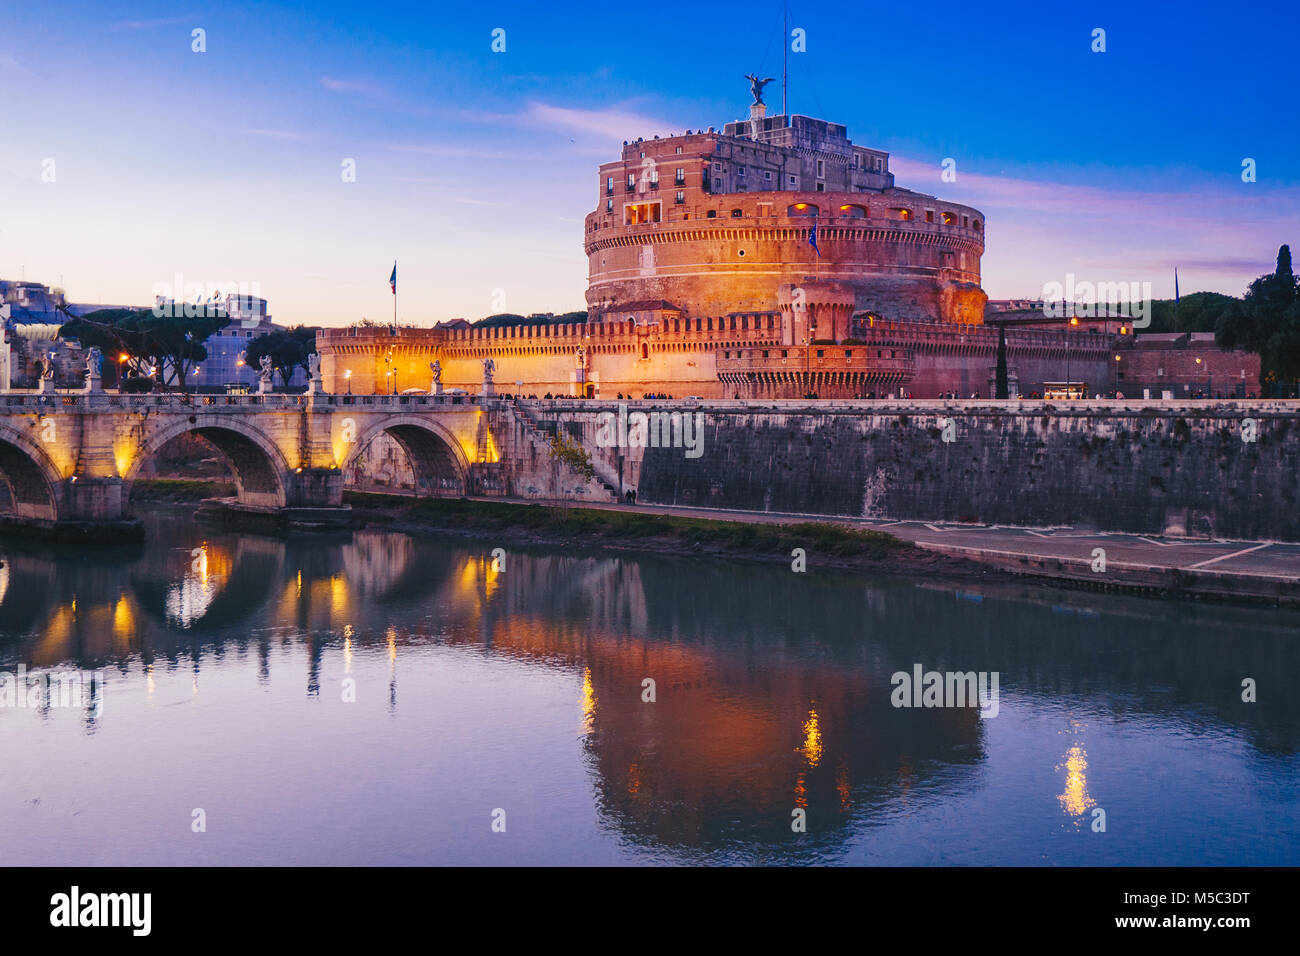 Night view of Sant' Angelo Castle in Rome, Italy - Stock Image